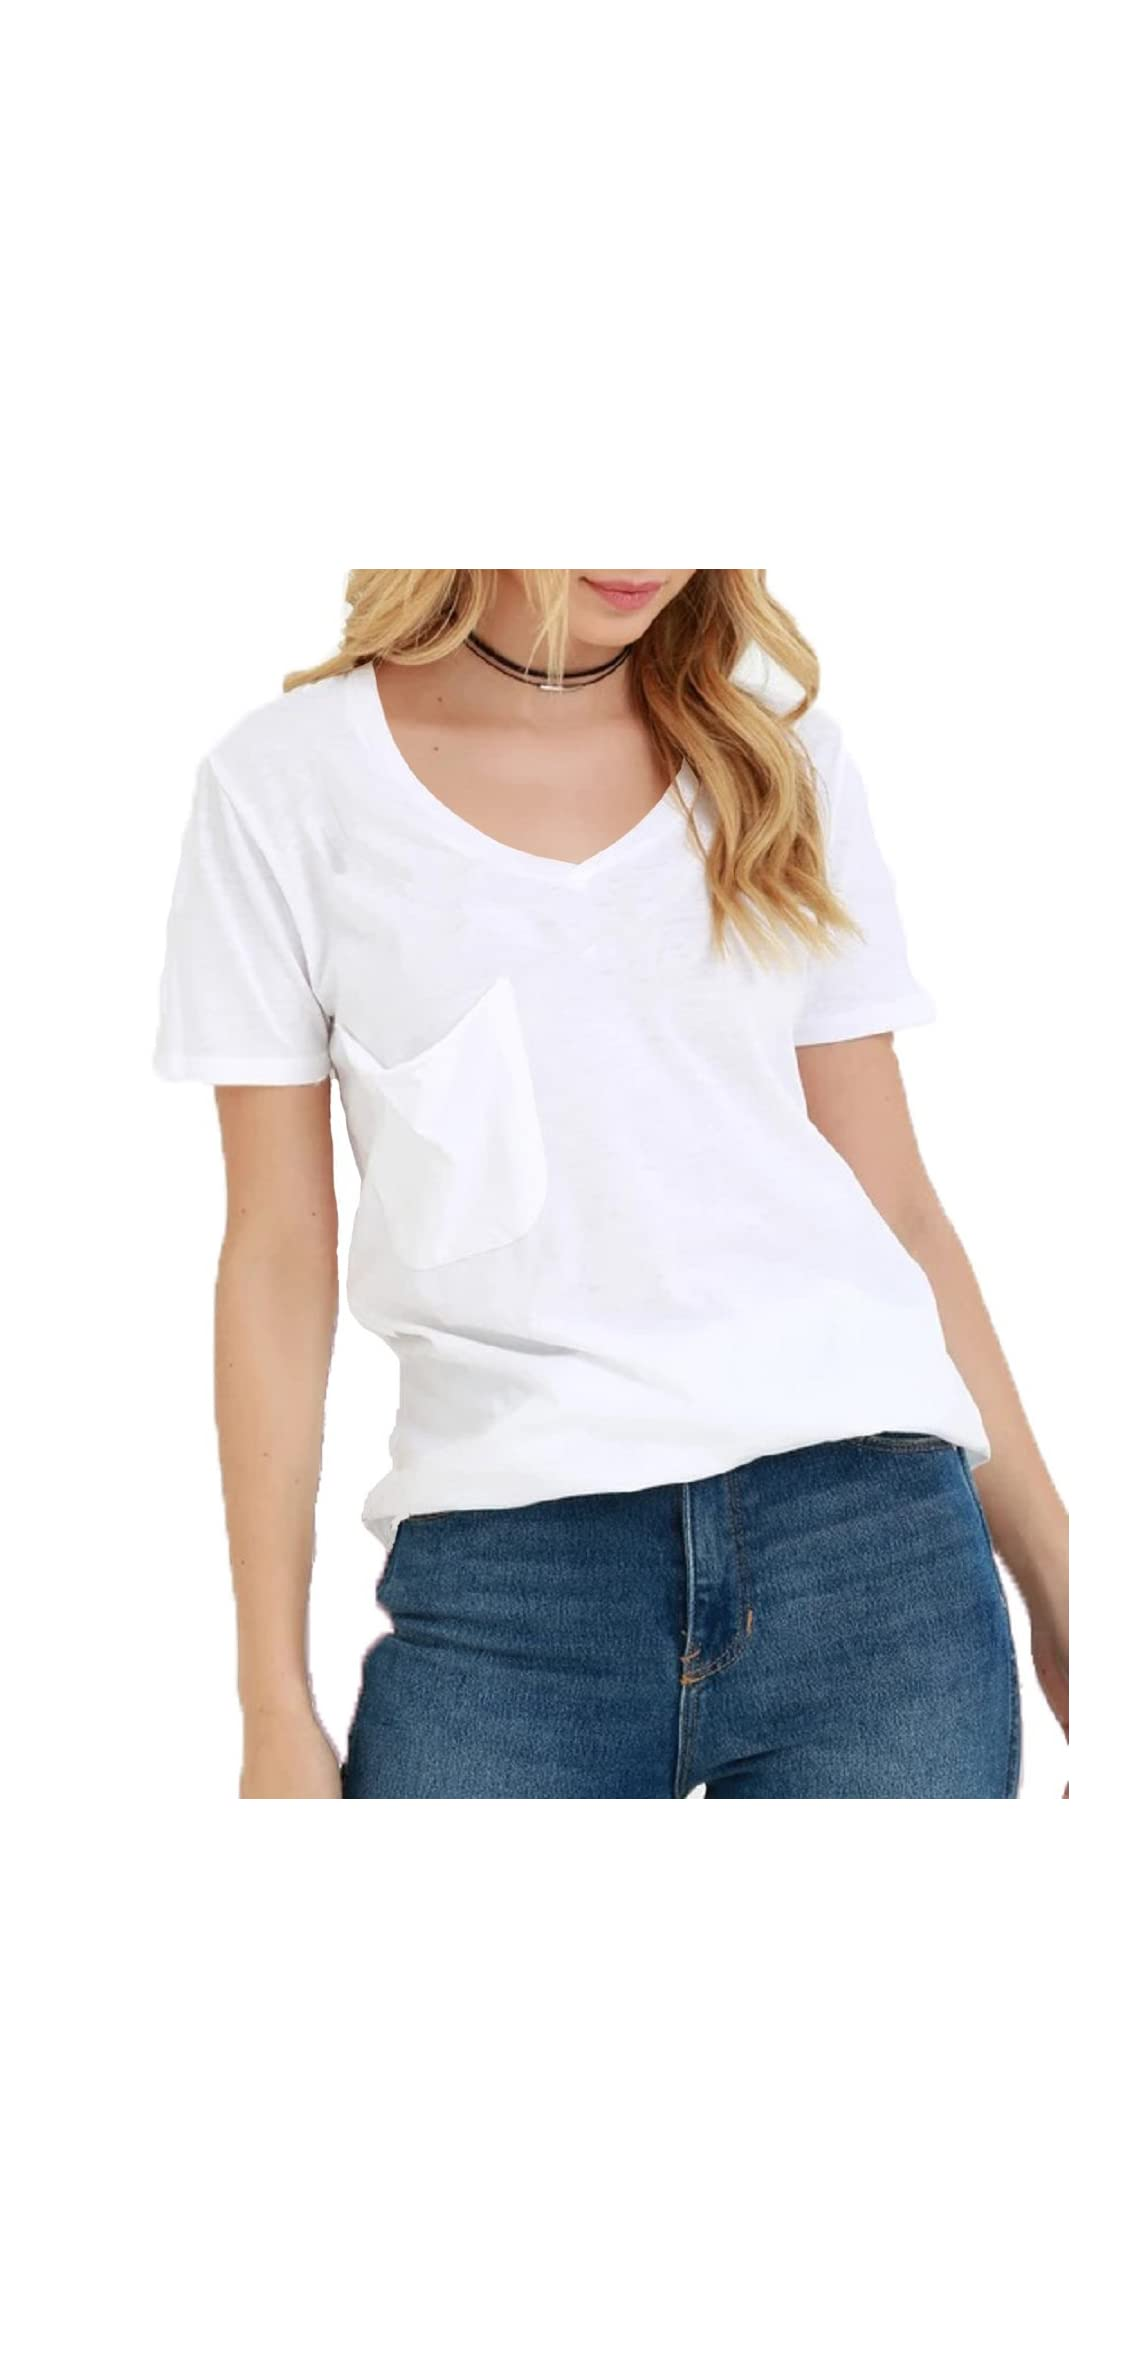 Women's Summer Casual Sexy Short Sleeve V Neck Patch Slub